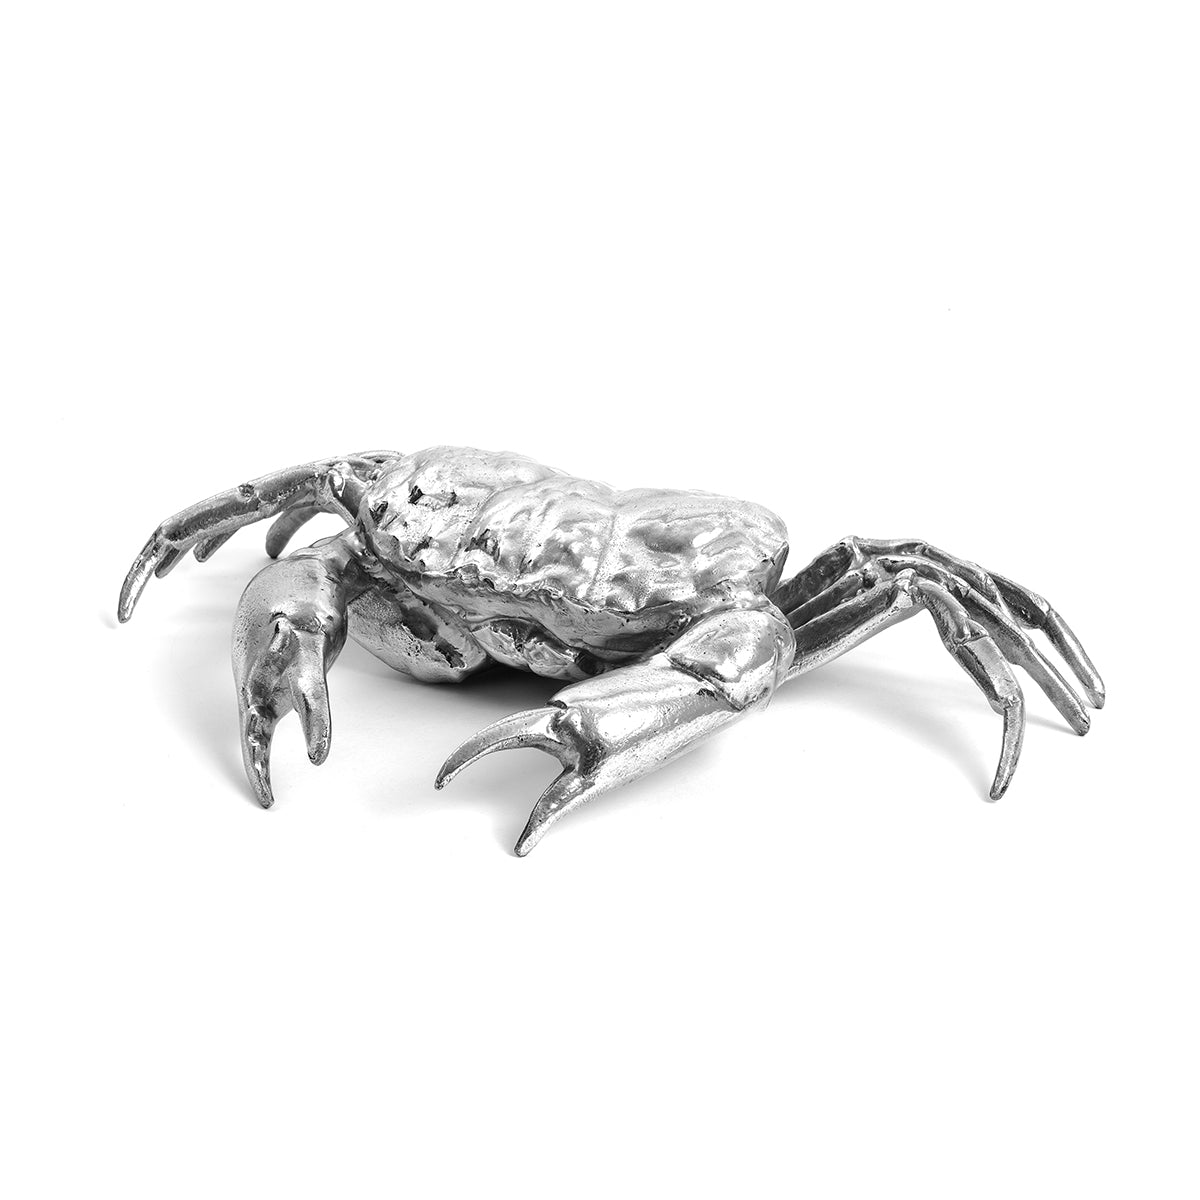 Wunderkammer Crab - Holy Crab - Seletti Wears Toiletpaper - Do Shop